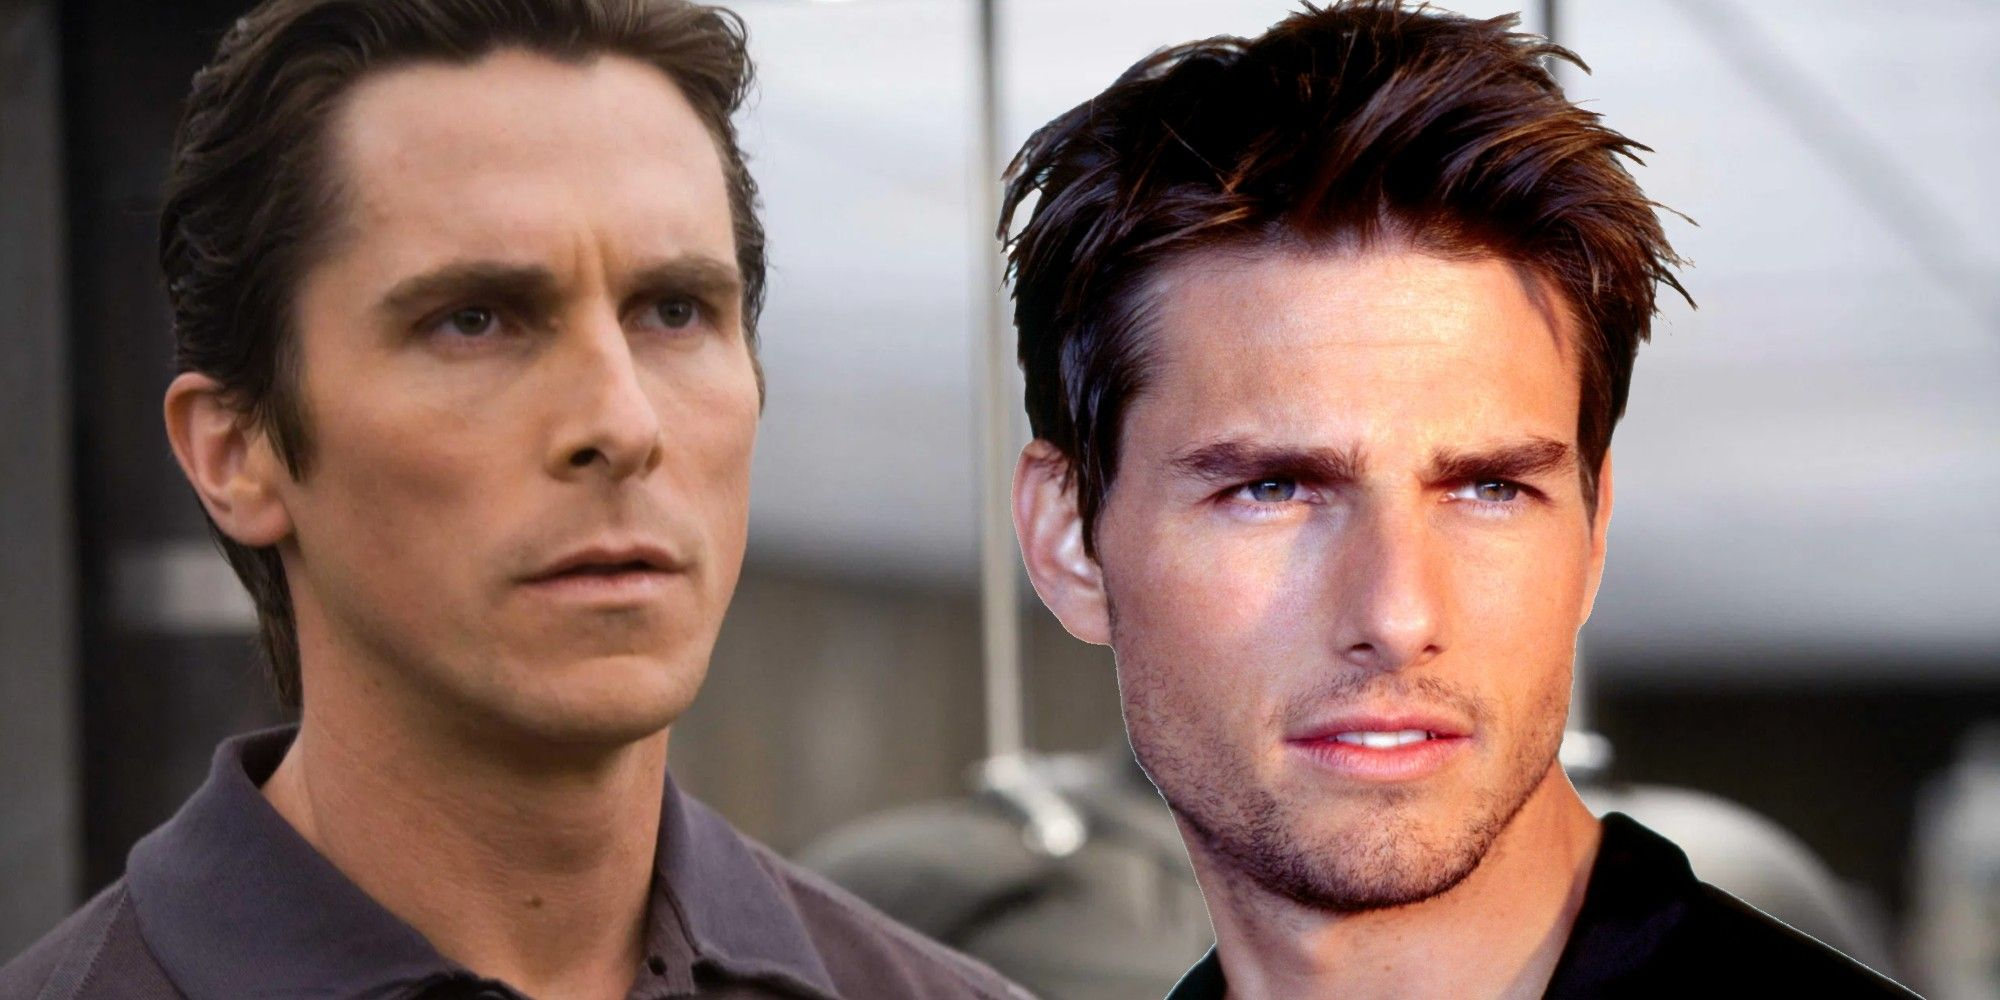 Tom Cruise & Christian Bale's On-Set Rants Edited Into One Wild Argument